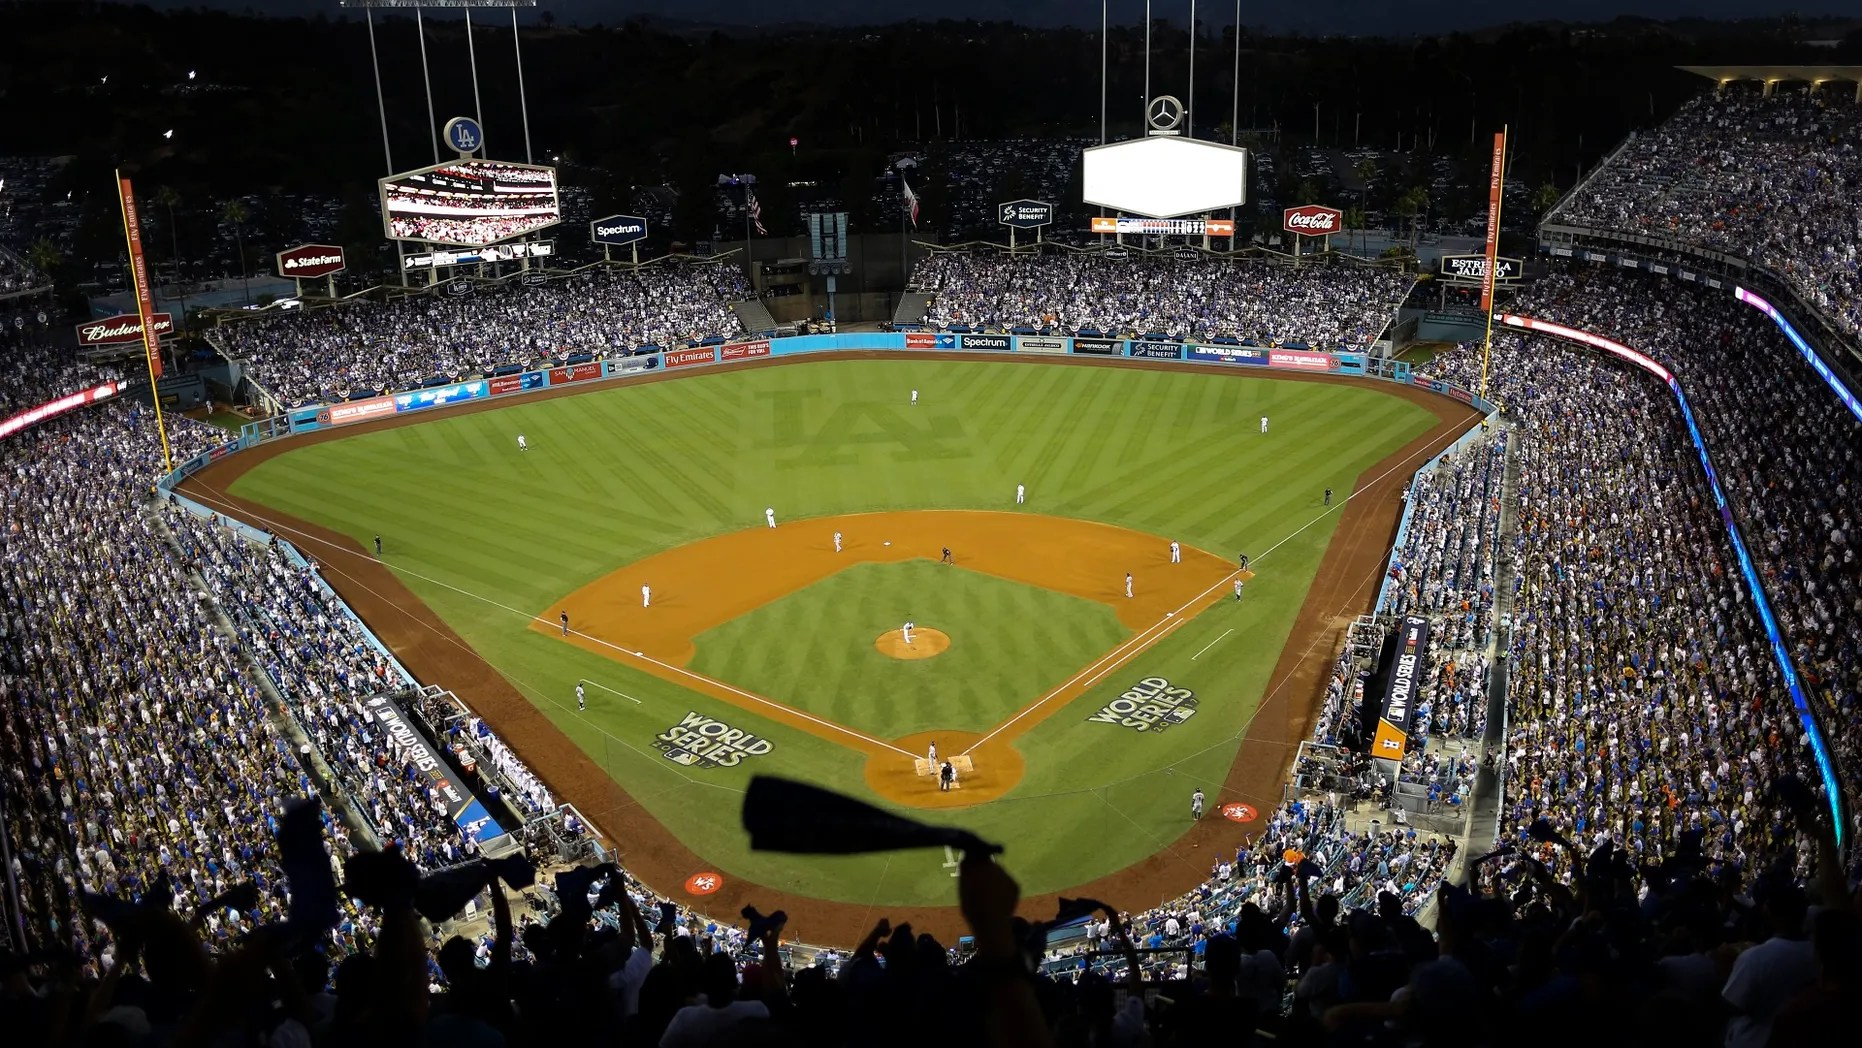 Jordan Benedict scored $9 tickets to game two of the World Series at Dodgers Stadium.